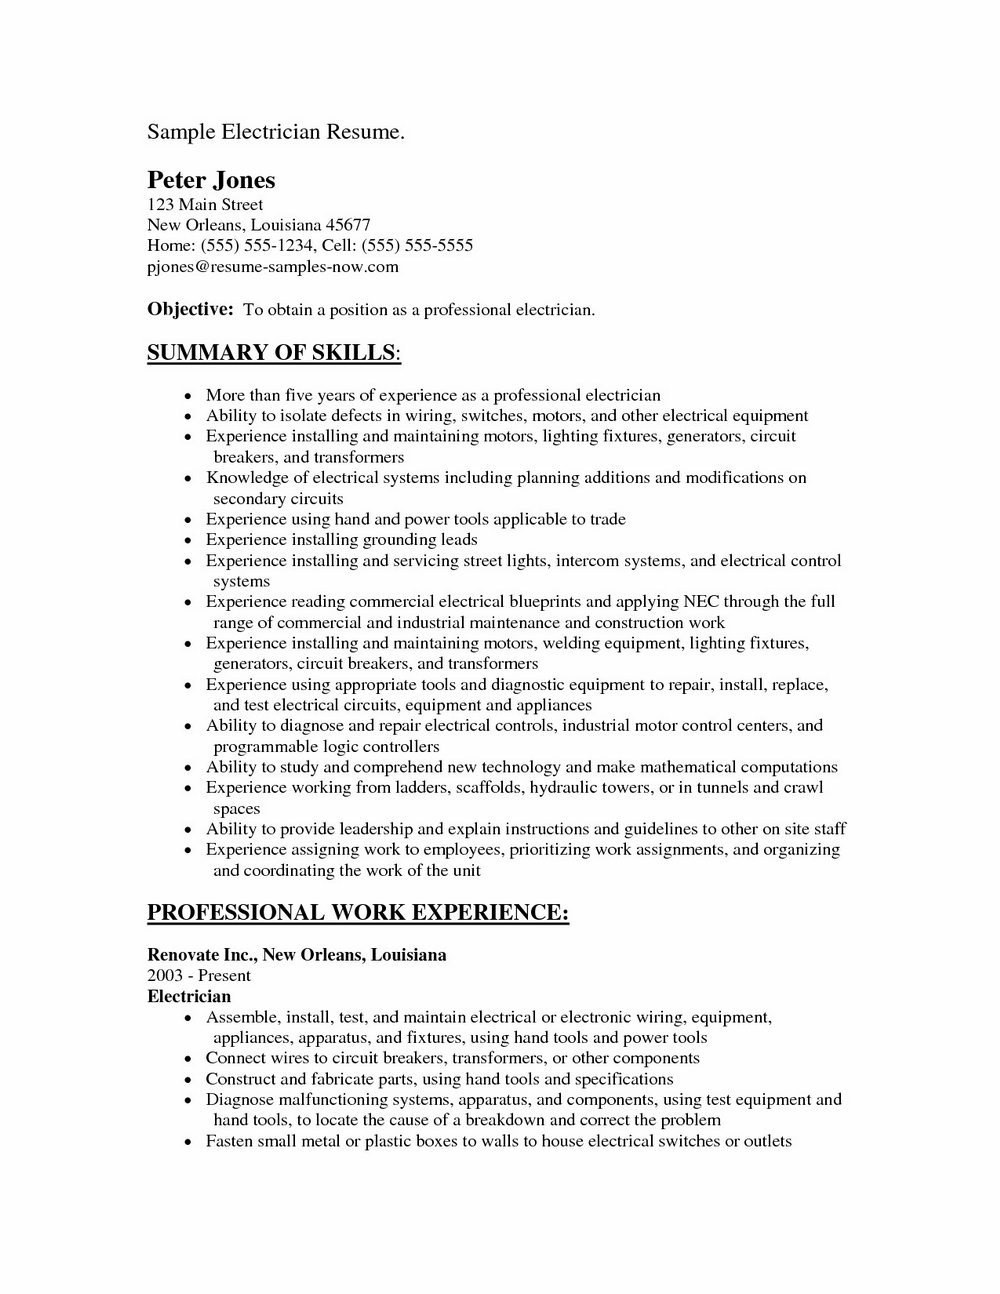 Sample Cover Letter For Hvac Job